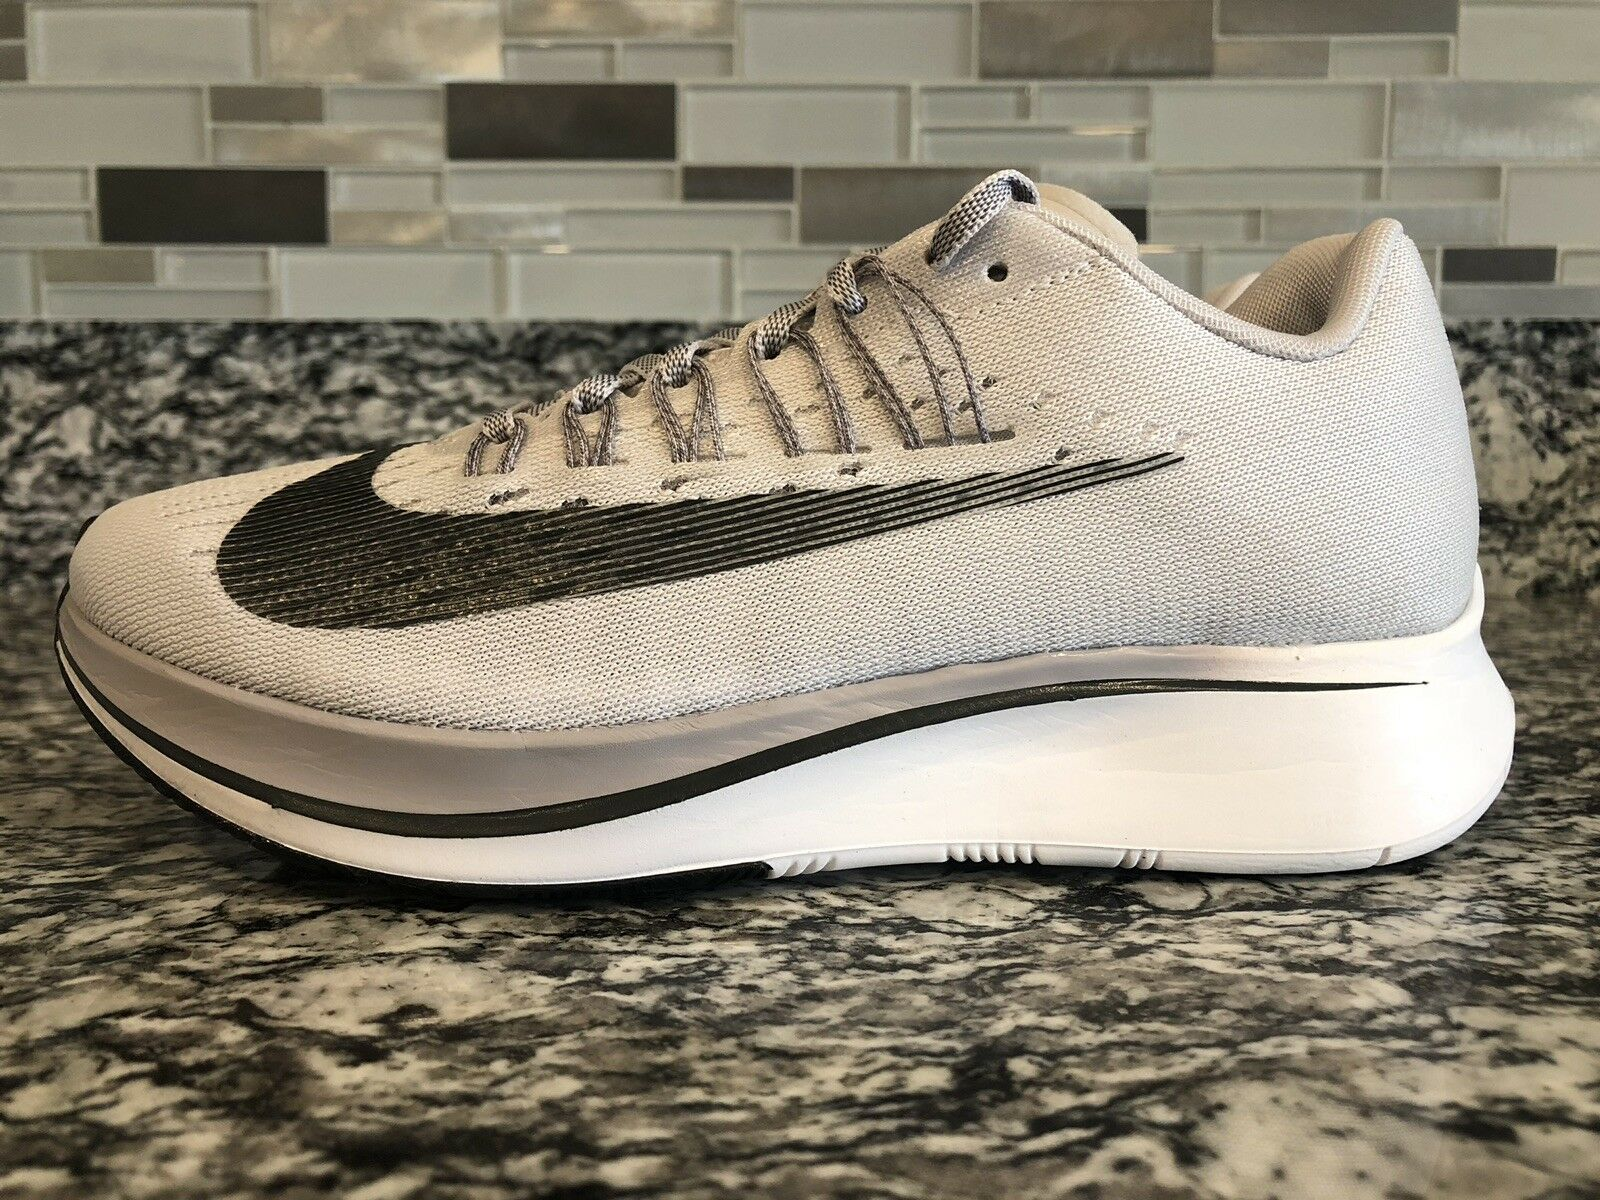 Nike Women's Zoom Fly SAMPLE VAST GREY BLACK WHITE 897821-002 sz 5.5 RUNNING